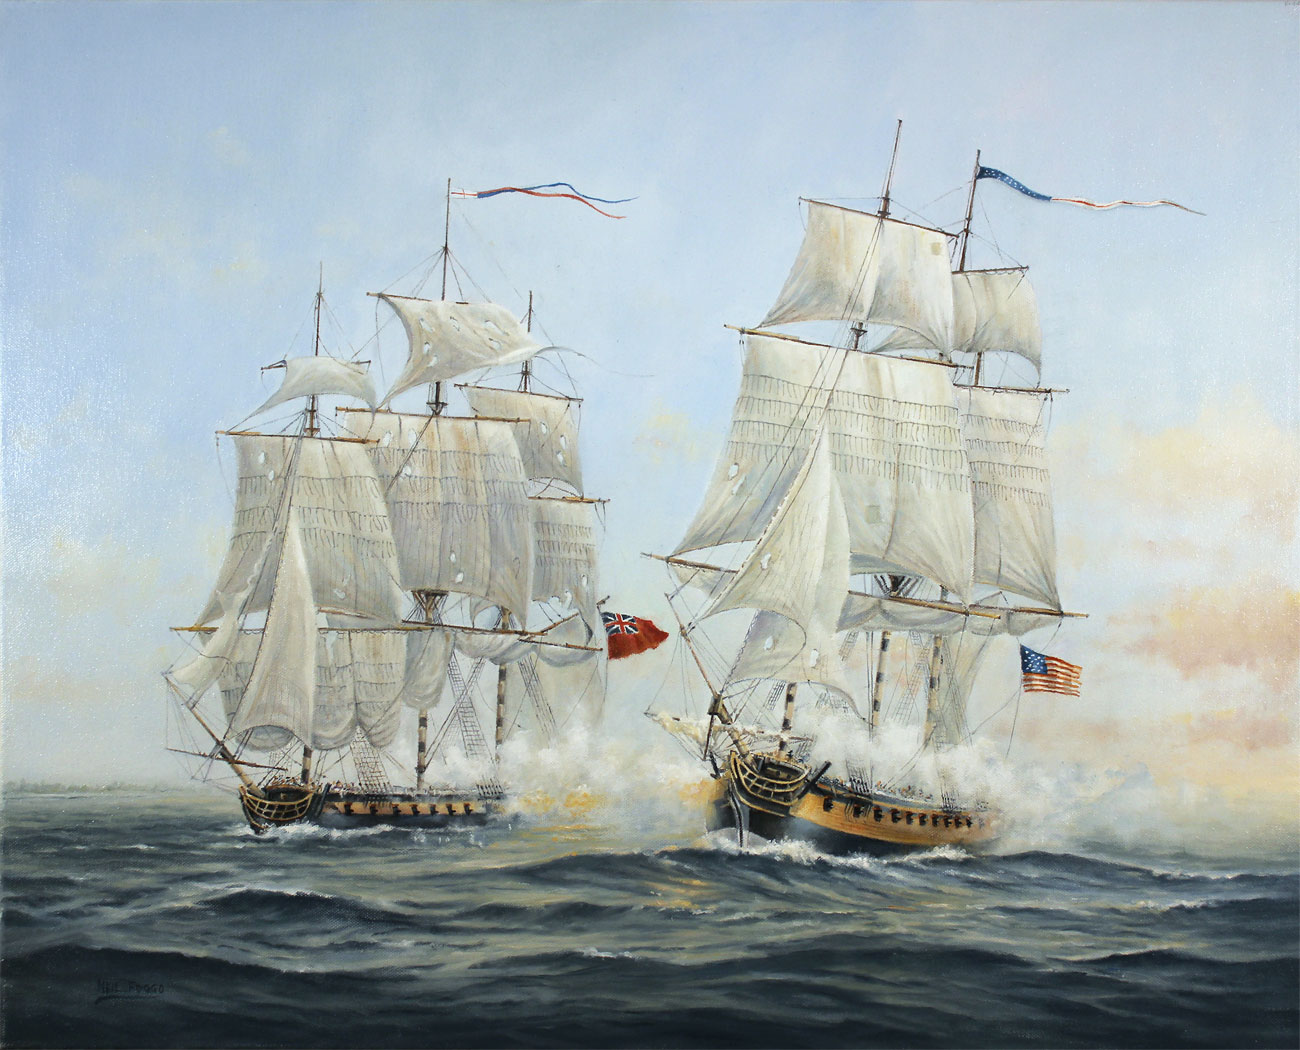 Neil Foggo, Original oil painting on canvas, A Battle Joined. Click to enlarge